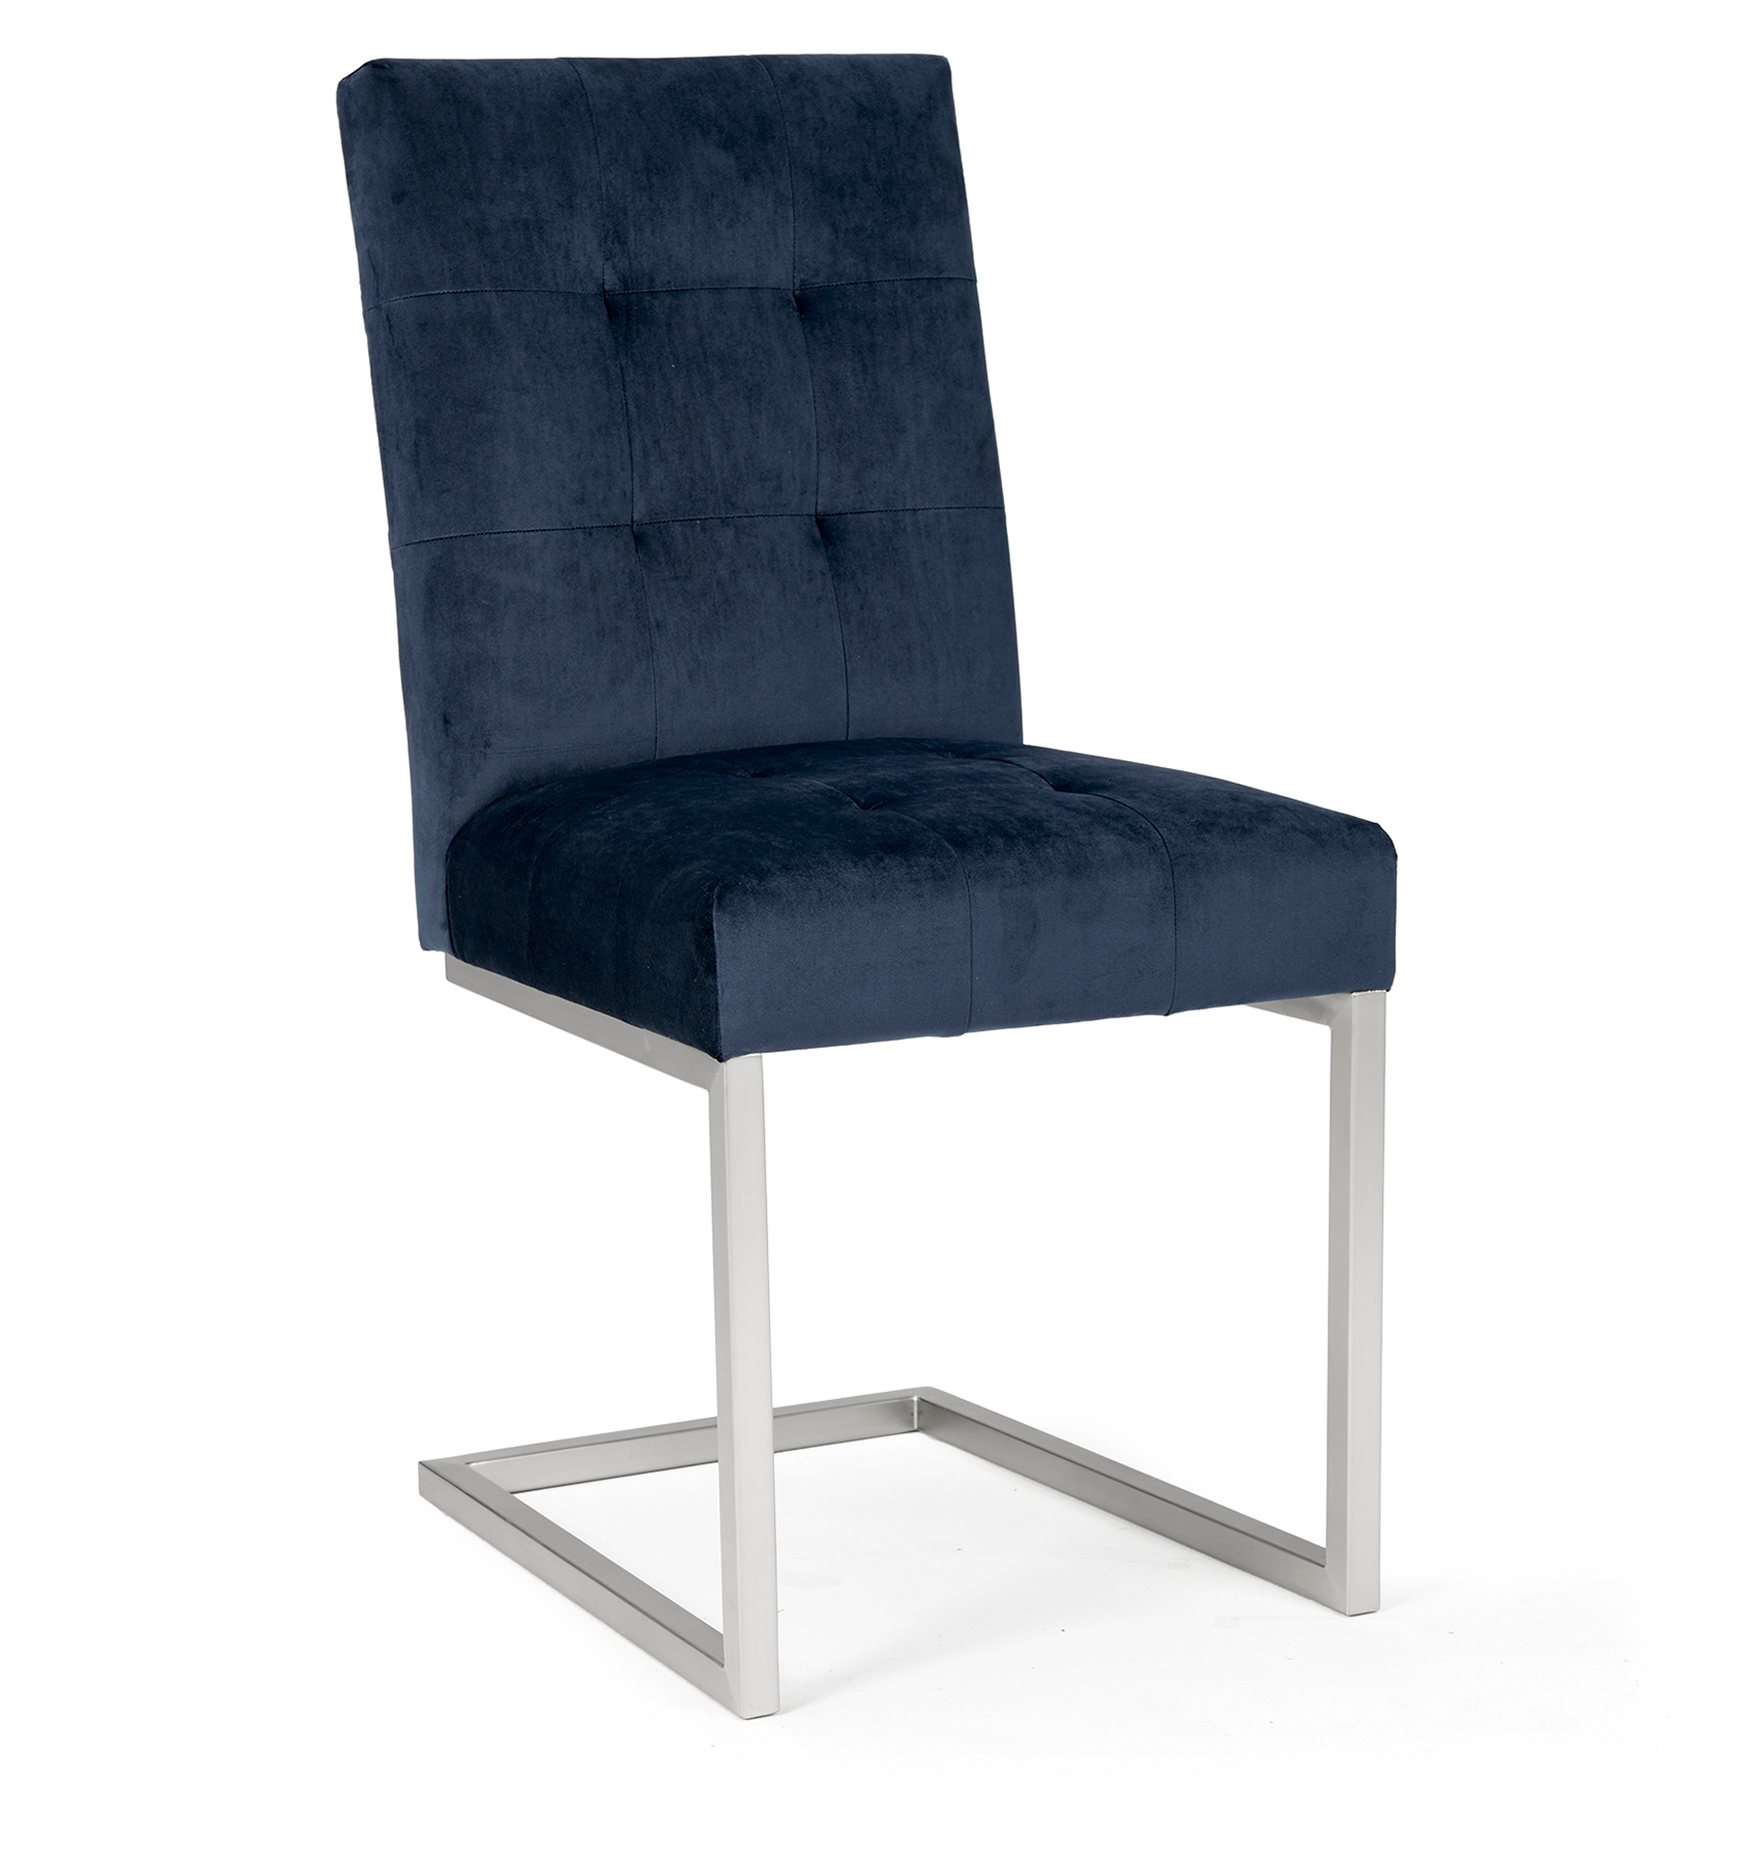 BRINDISI BLUE DINING CHAIR - FRONT DETAIL